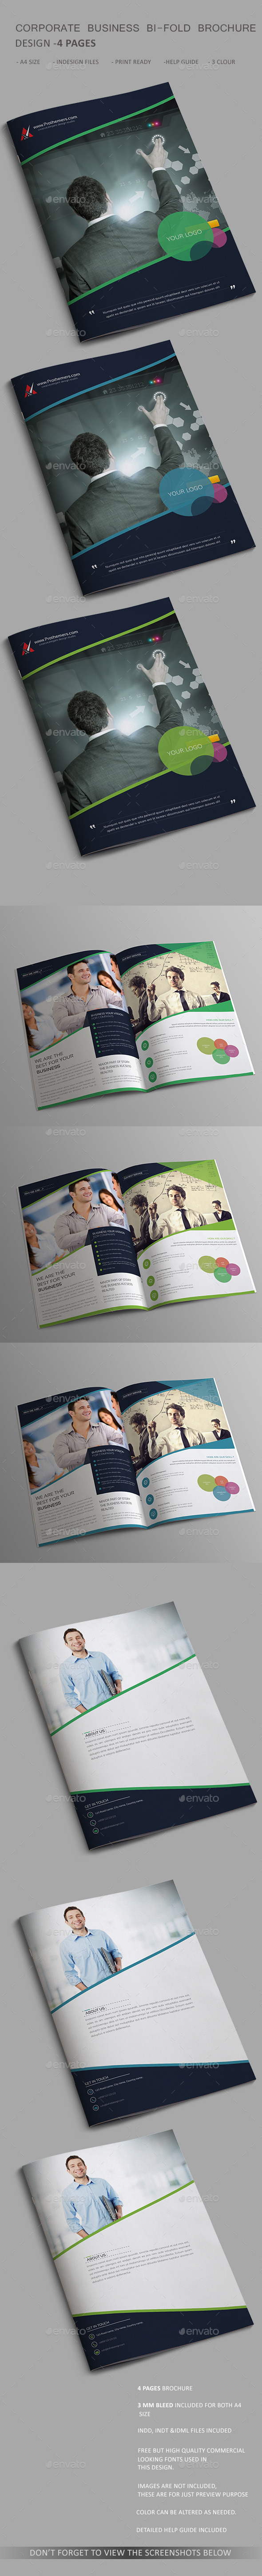 GraphicRiver Corporate Business Bi-fold Brochure 4 Page 11068085